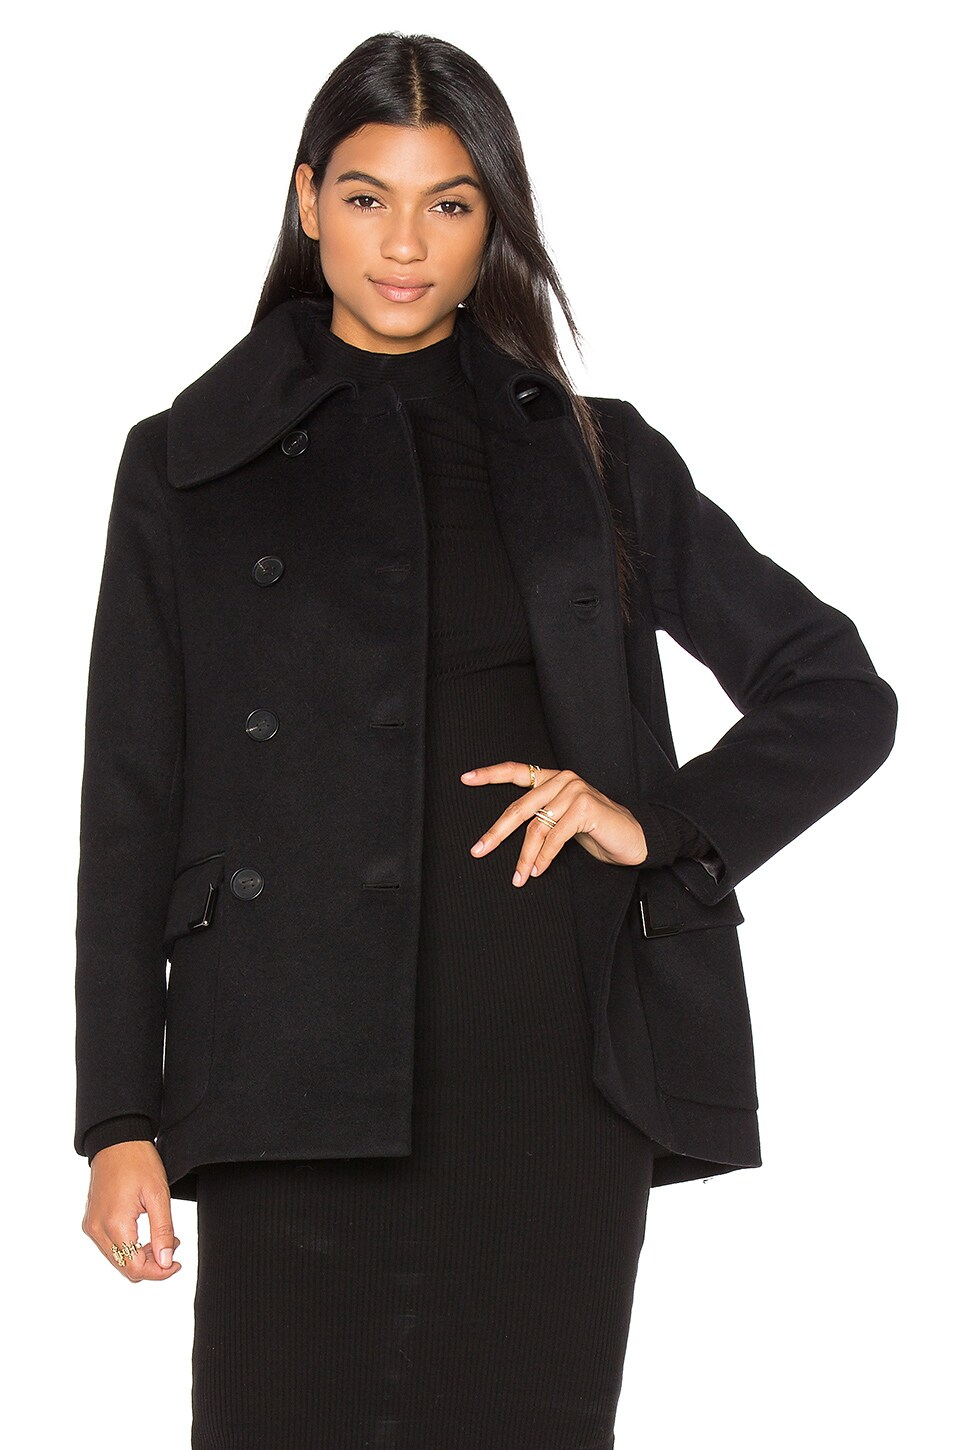 Mackage Phoebe Coat in Black